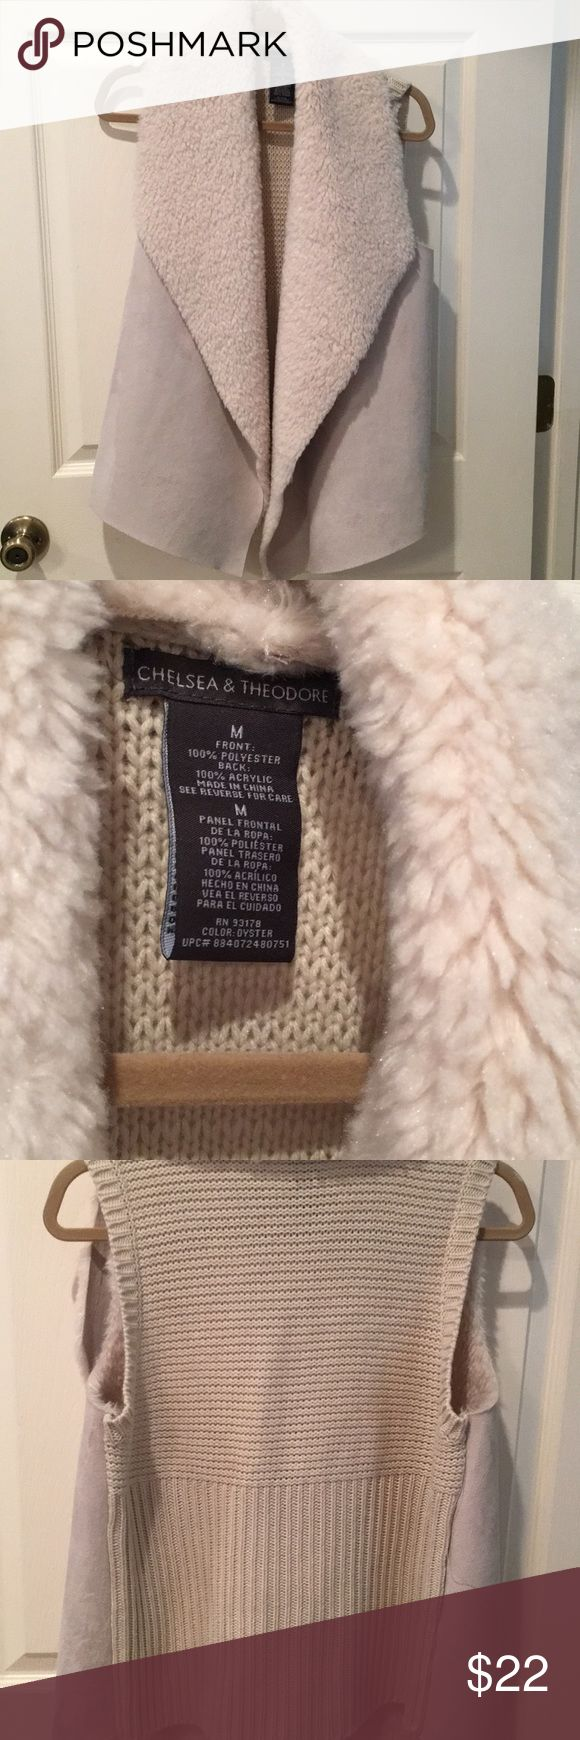 Chelsea & Theodore Cream Vest Size medium, faux fur and suede look front with sweater back, so adorable will fit a large . Worn one time . Smoke/pet free home. Thank you for shopping my closet !! Chelsea & theodore Jackets & Coats Vests